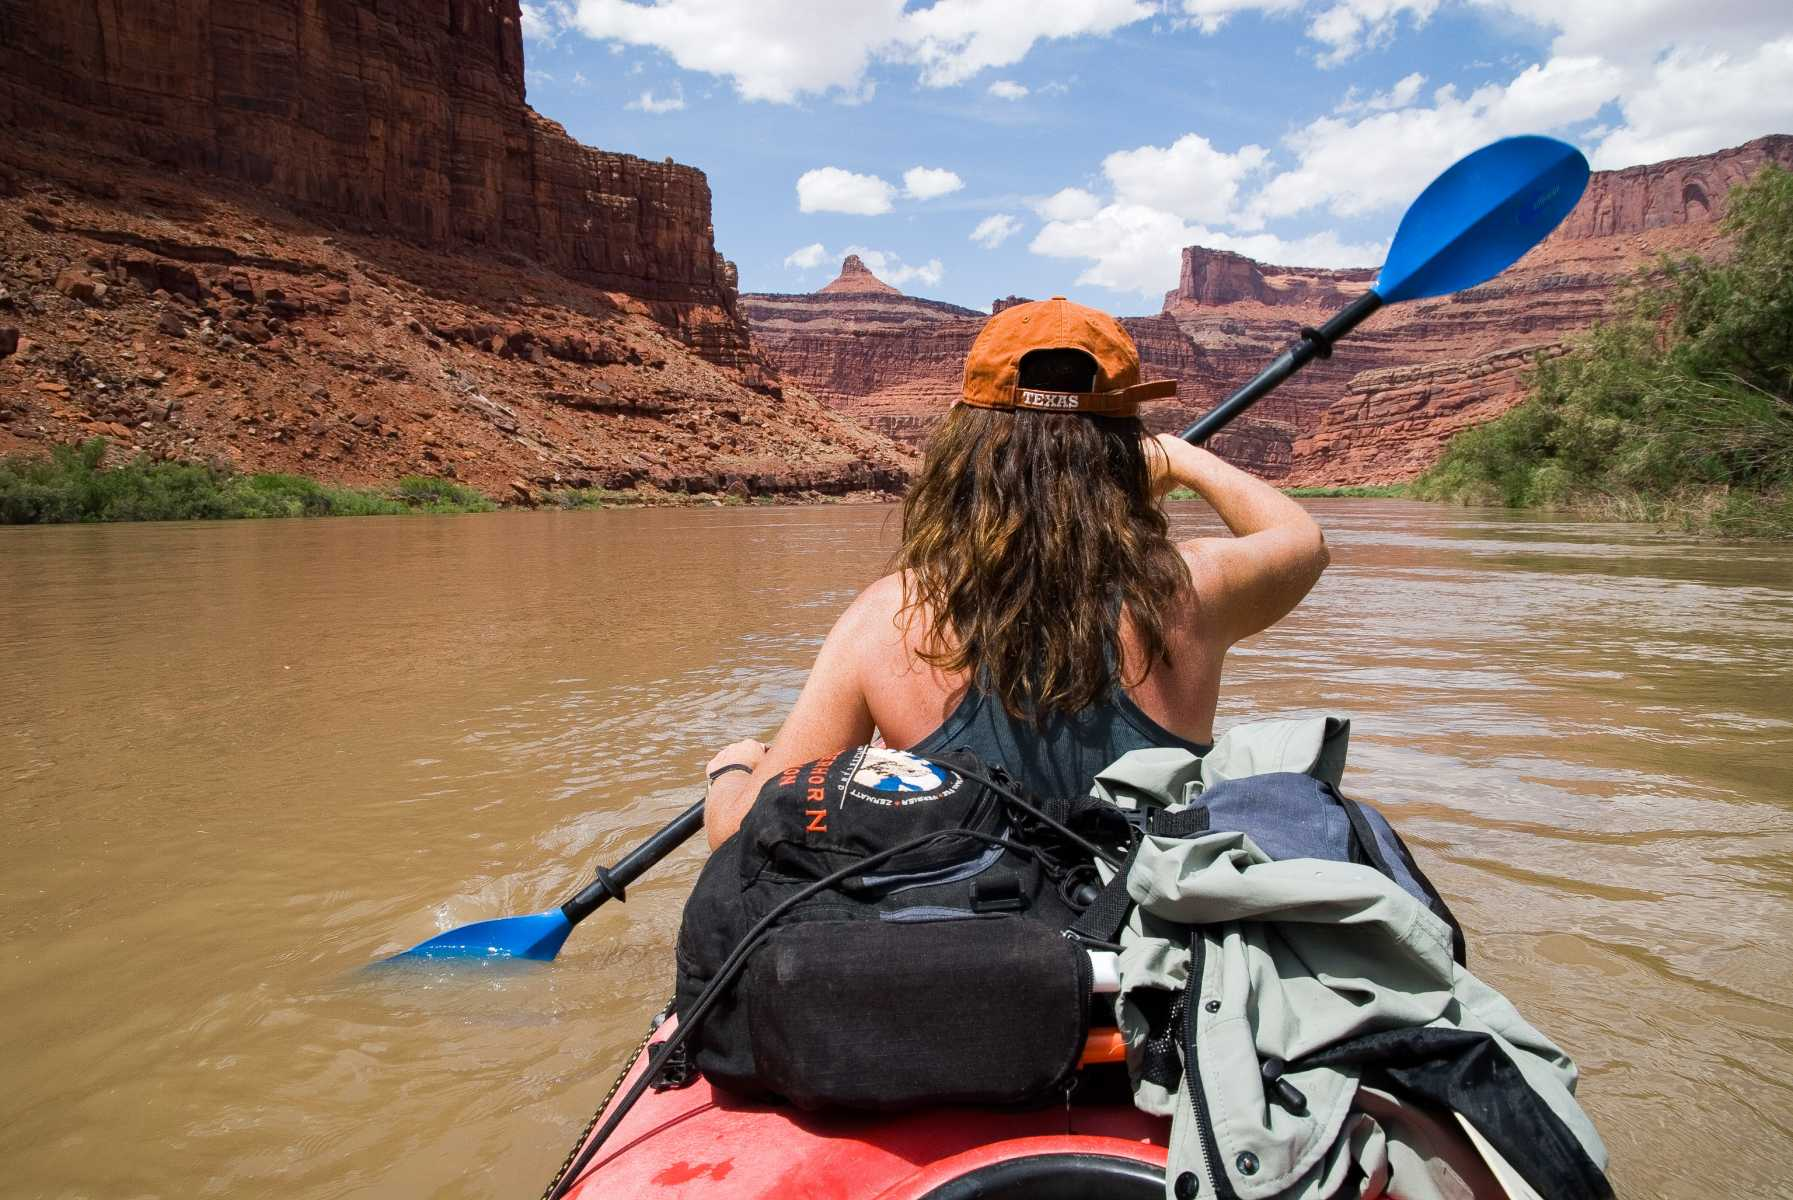 Etats-unis - Parcs de l'Utah - Descendre le Colorado en kayak, au coeur de Canyonlands National Park : un trip mythique sur les traces du Major Powell.